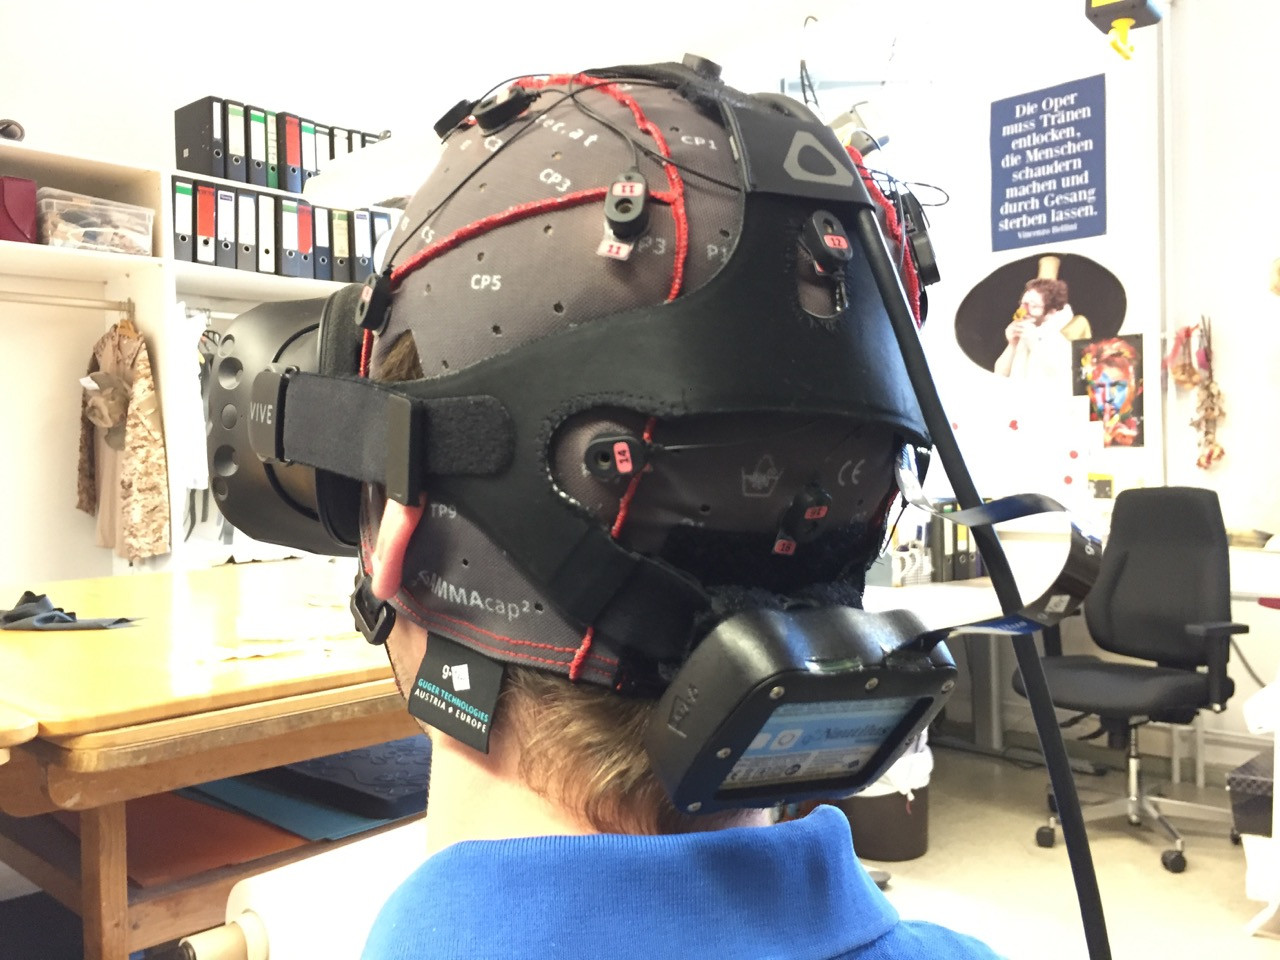 Immersive EEG: Evaluating Electroencephalography in Virtual Reality